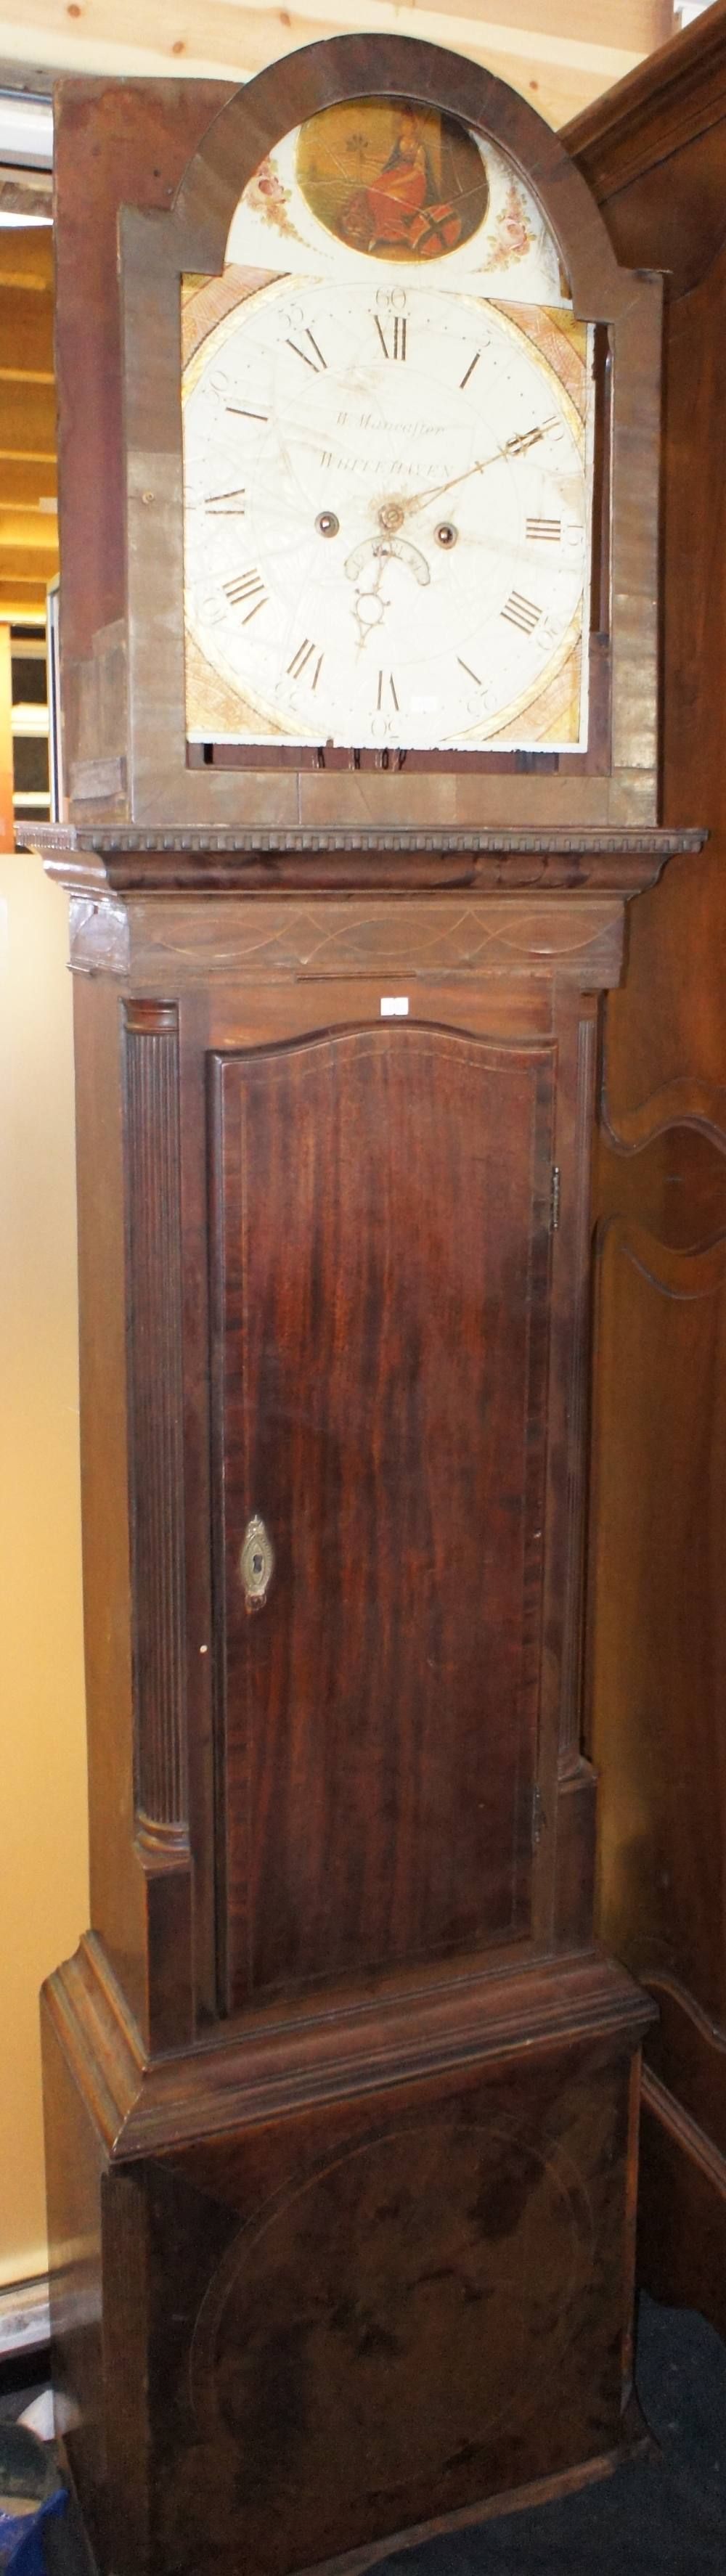 Lot 607 - NV- A part mahogany cased grandfather clock with a painted face and eight day movement (Incomplete)